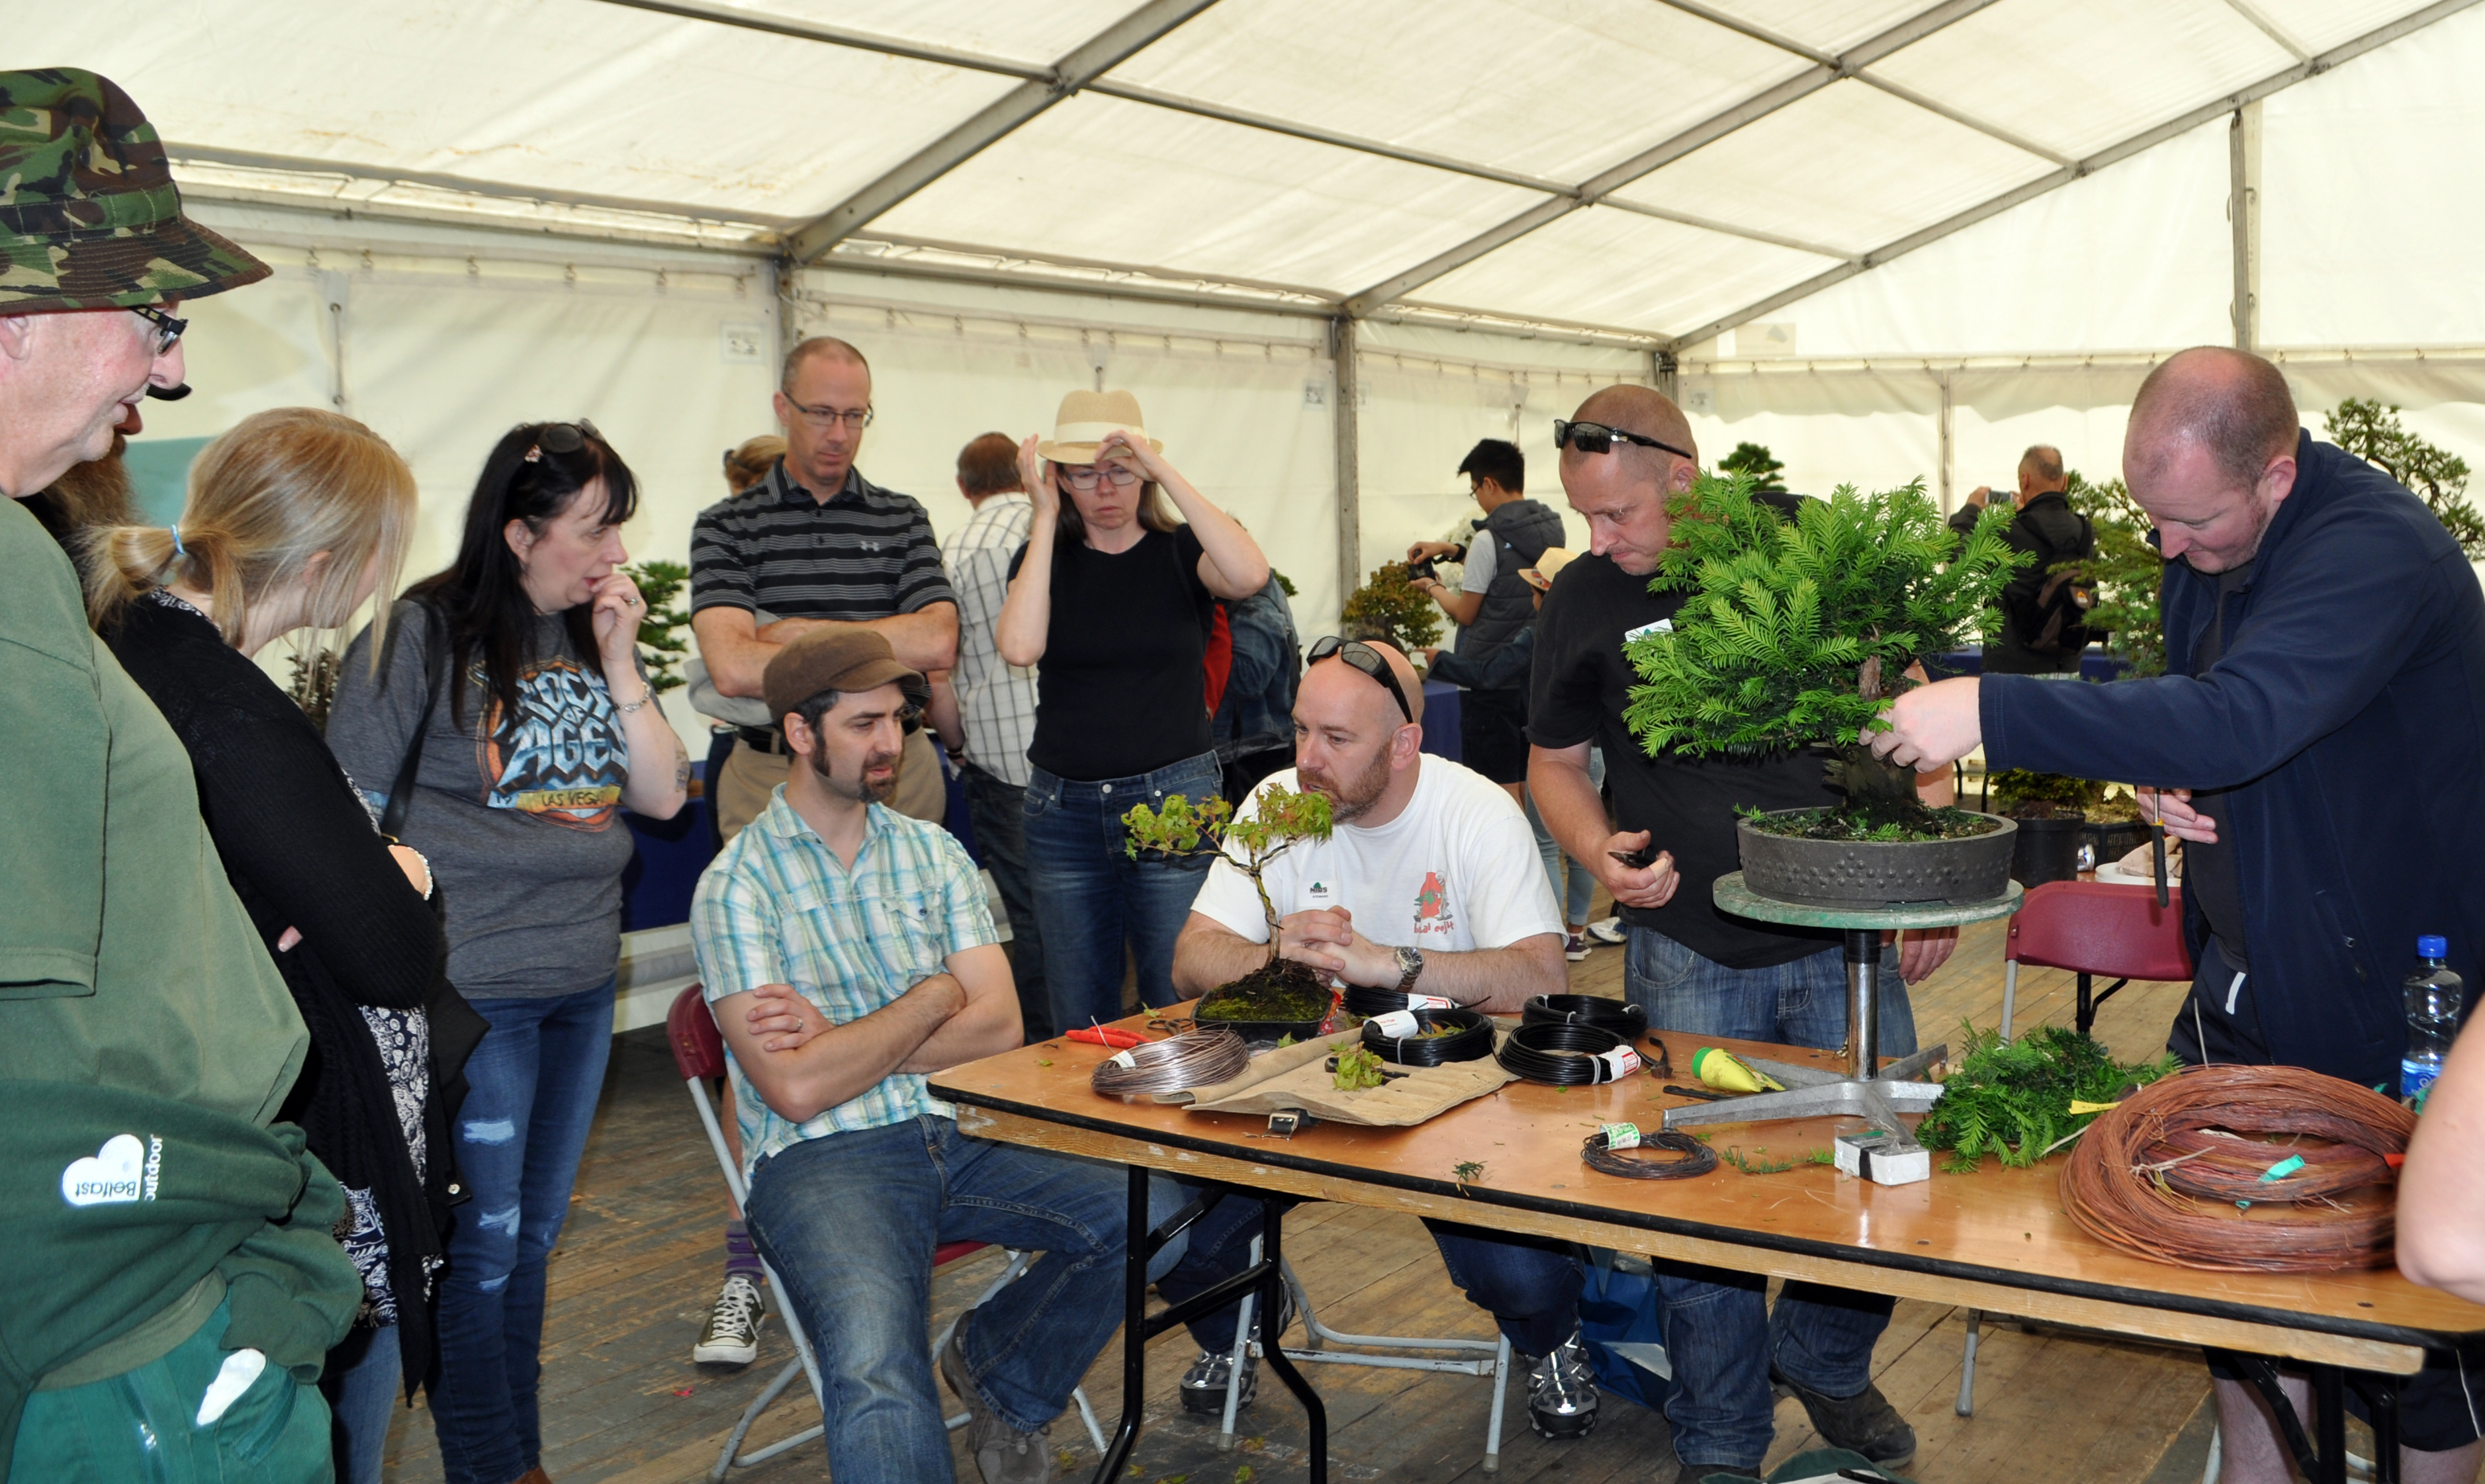 Bonsai clinic in action